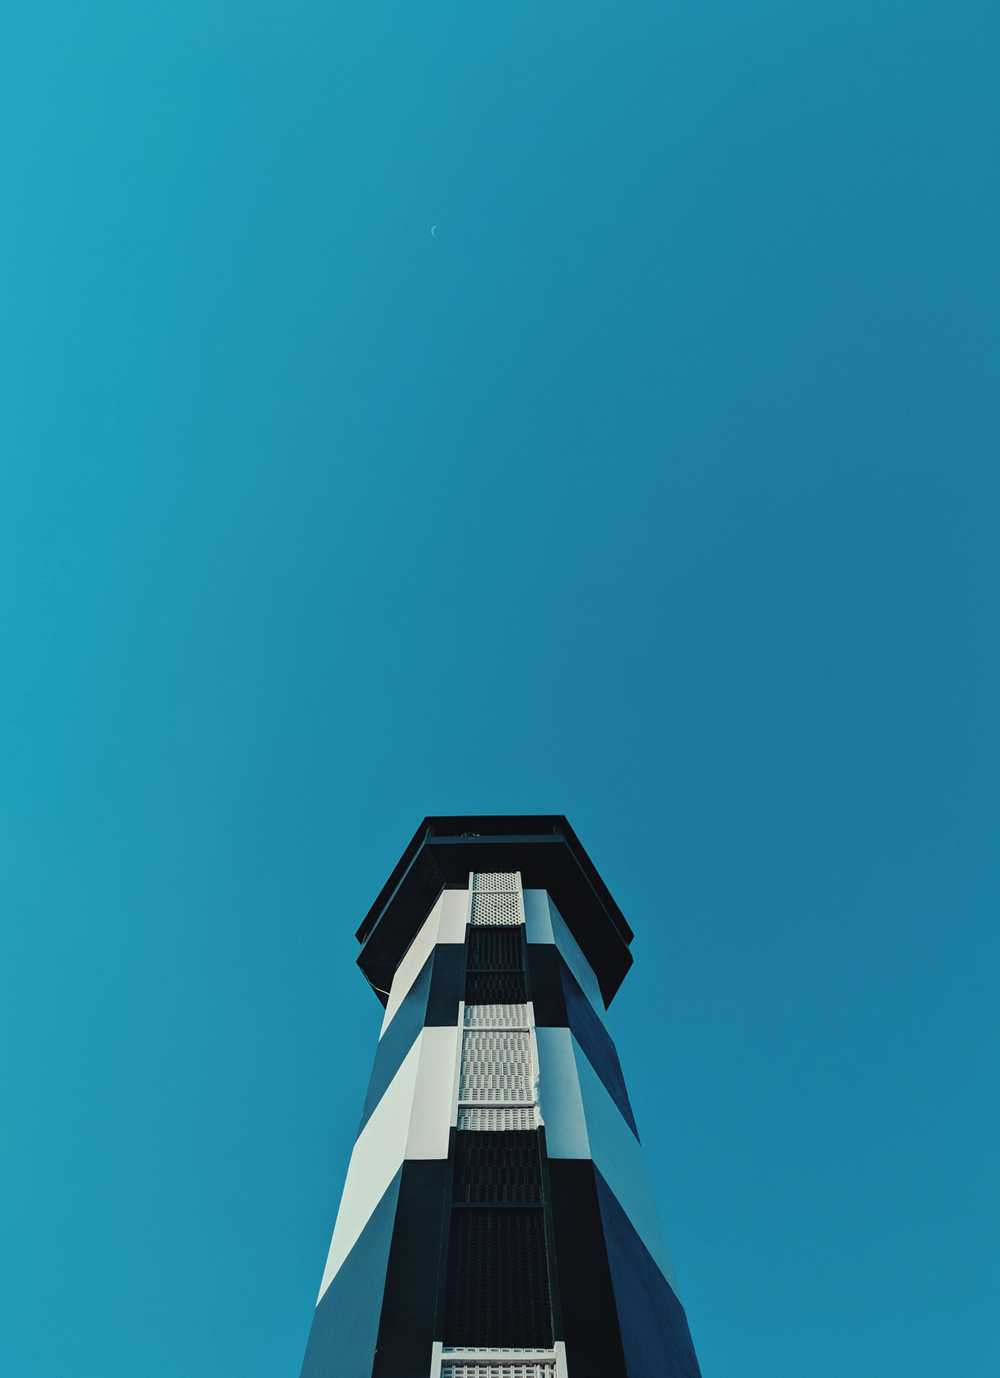 white and blue lighthouse in low-angle photography during daytime